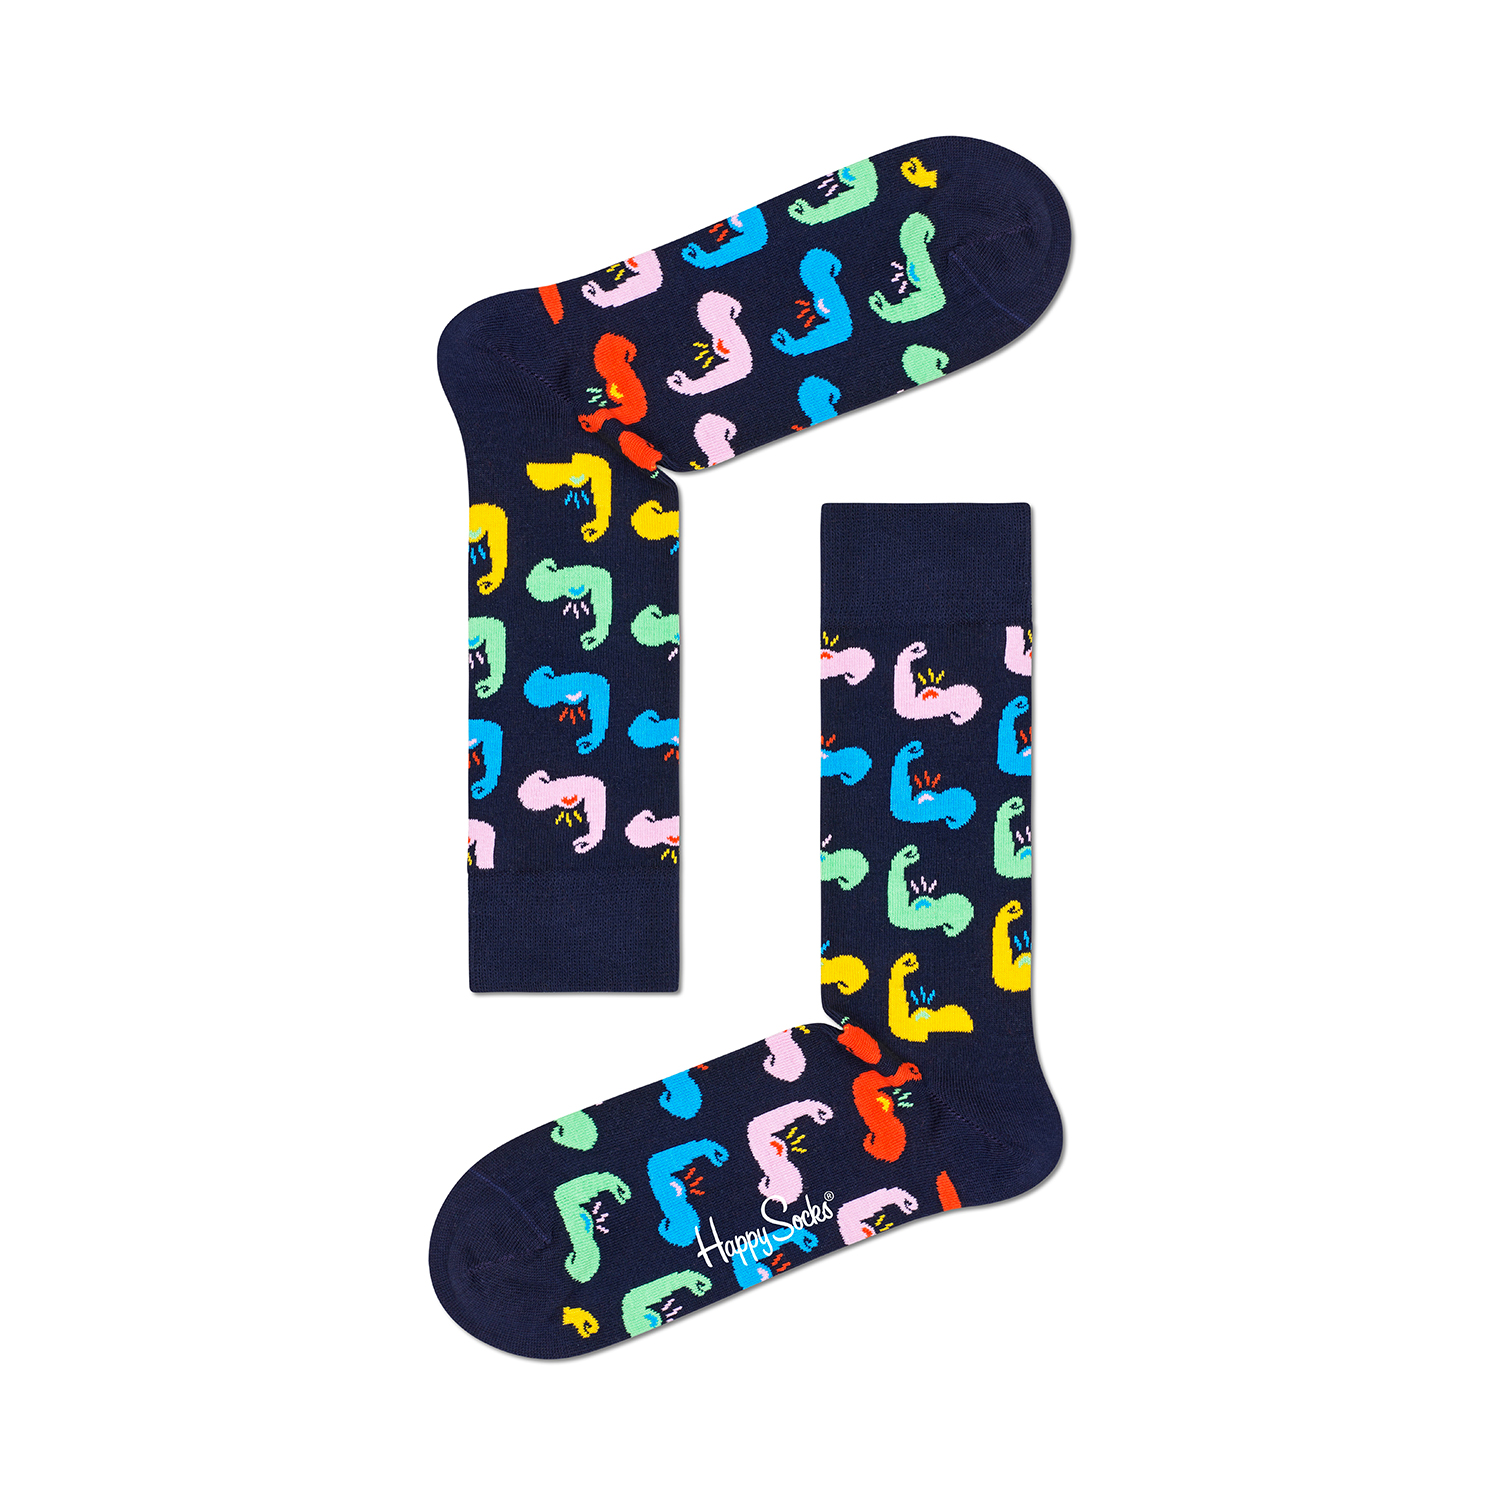 happy socks gift set fathers day 04 1500